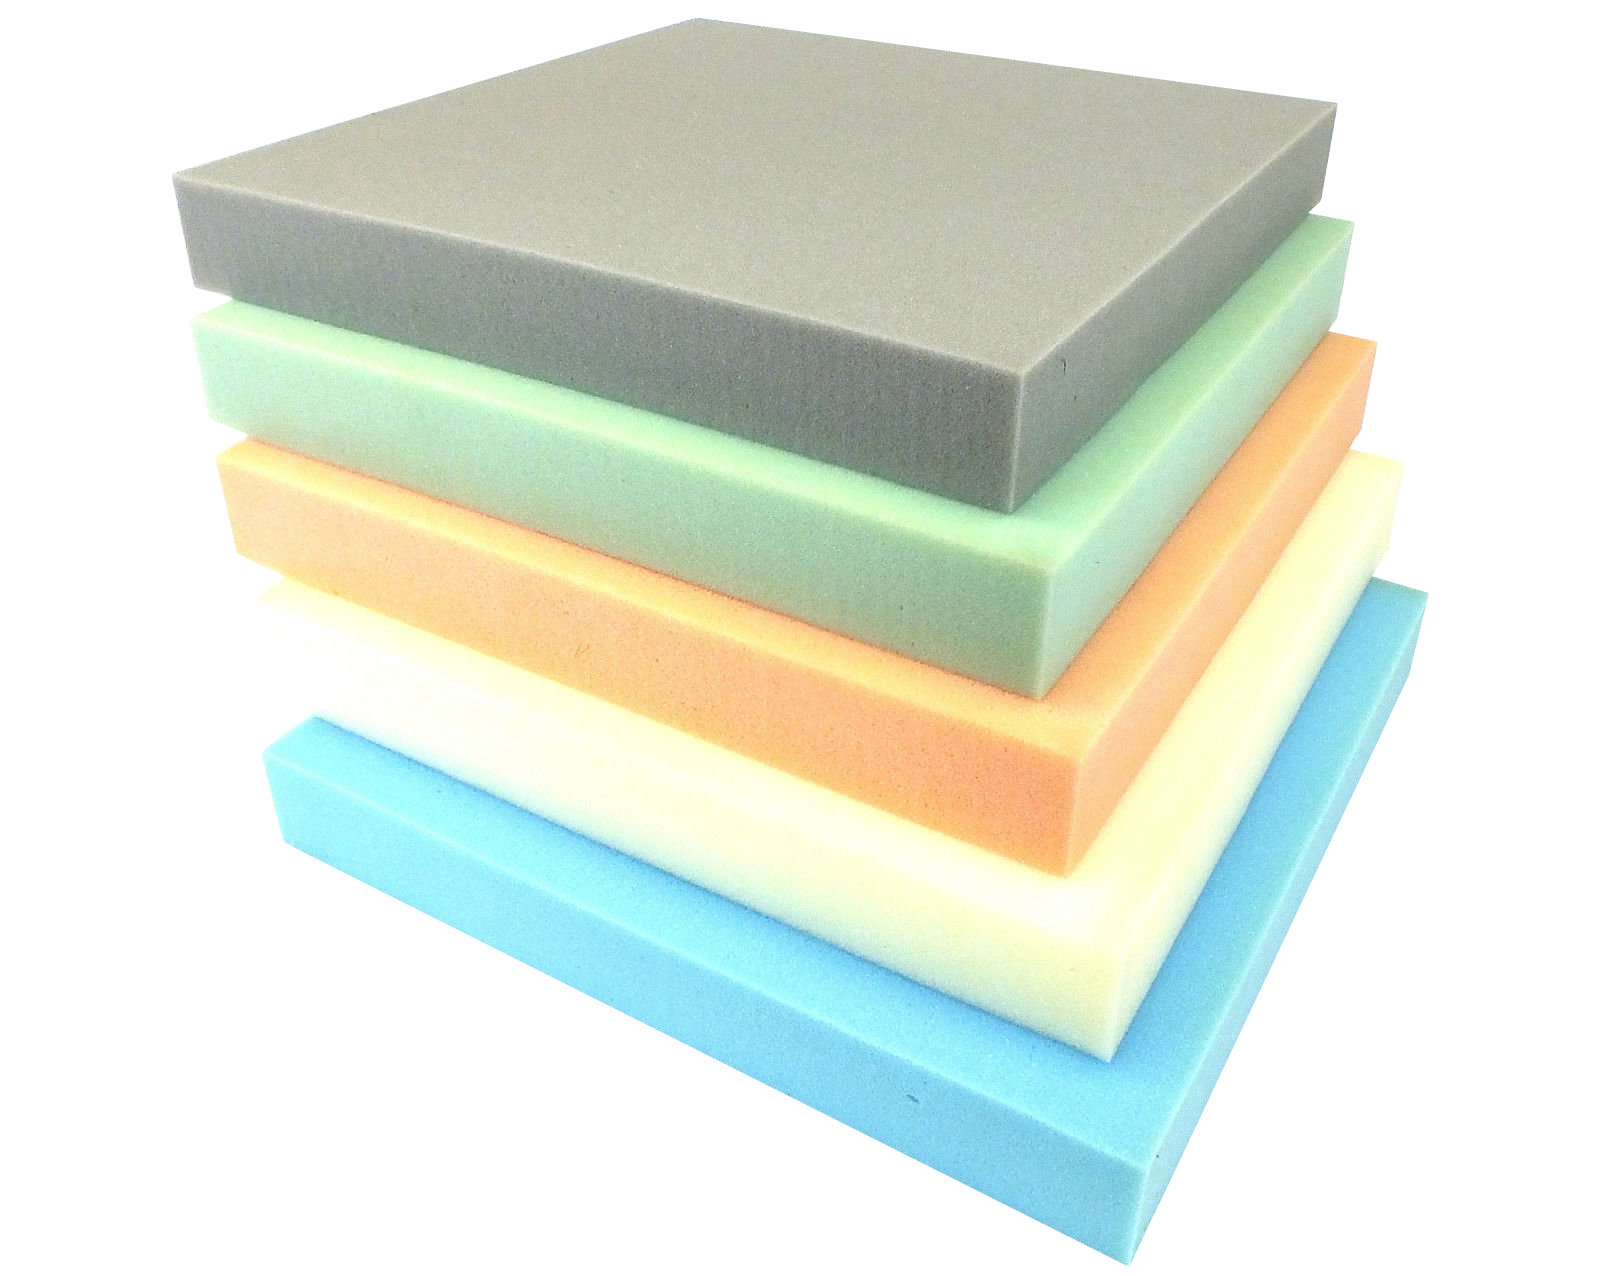 High Density Upholstery Foam | Dense Foam for Cushions | Foam Sheets for Upholstery